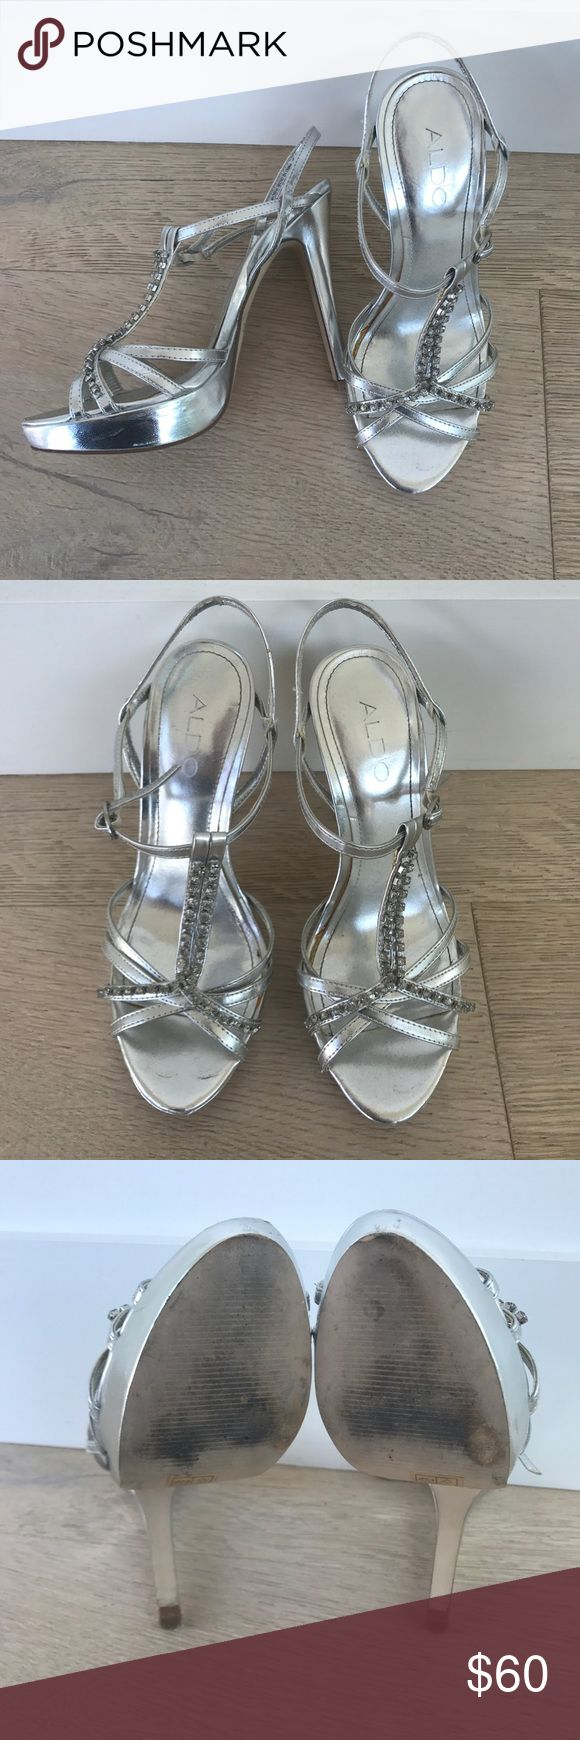 Aldo Silver Strappy Heels Flaws shown, some of the glue is exposed and the heel is lifting but could easily be stuck down. Nothing that would be visible while you were wearing them :) worn once or twice Aldo Shoes Heels